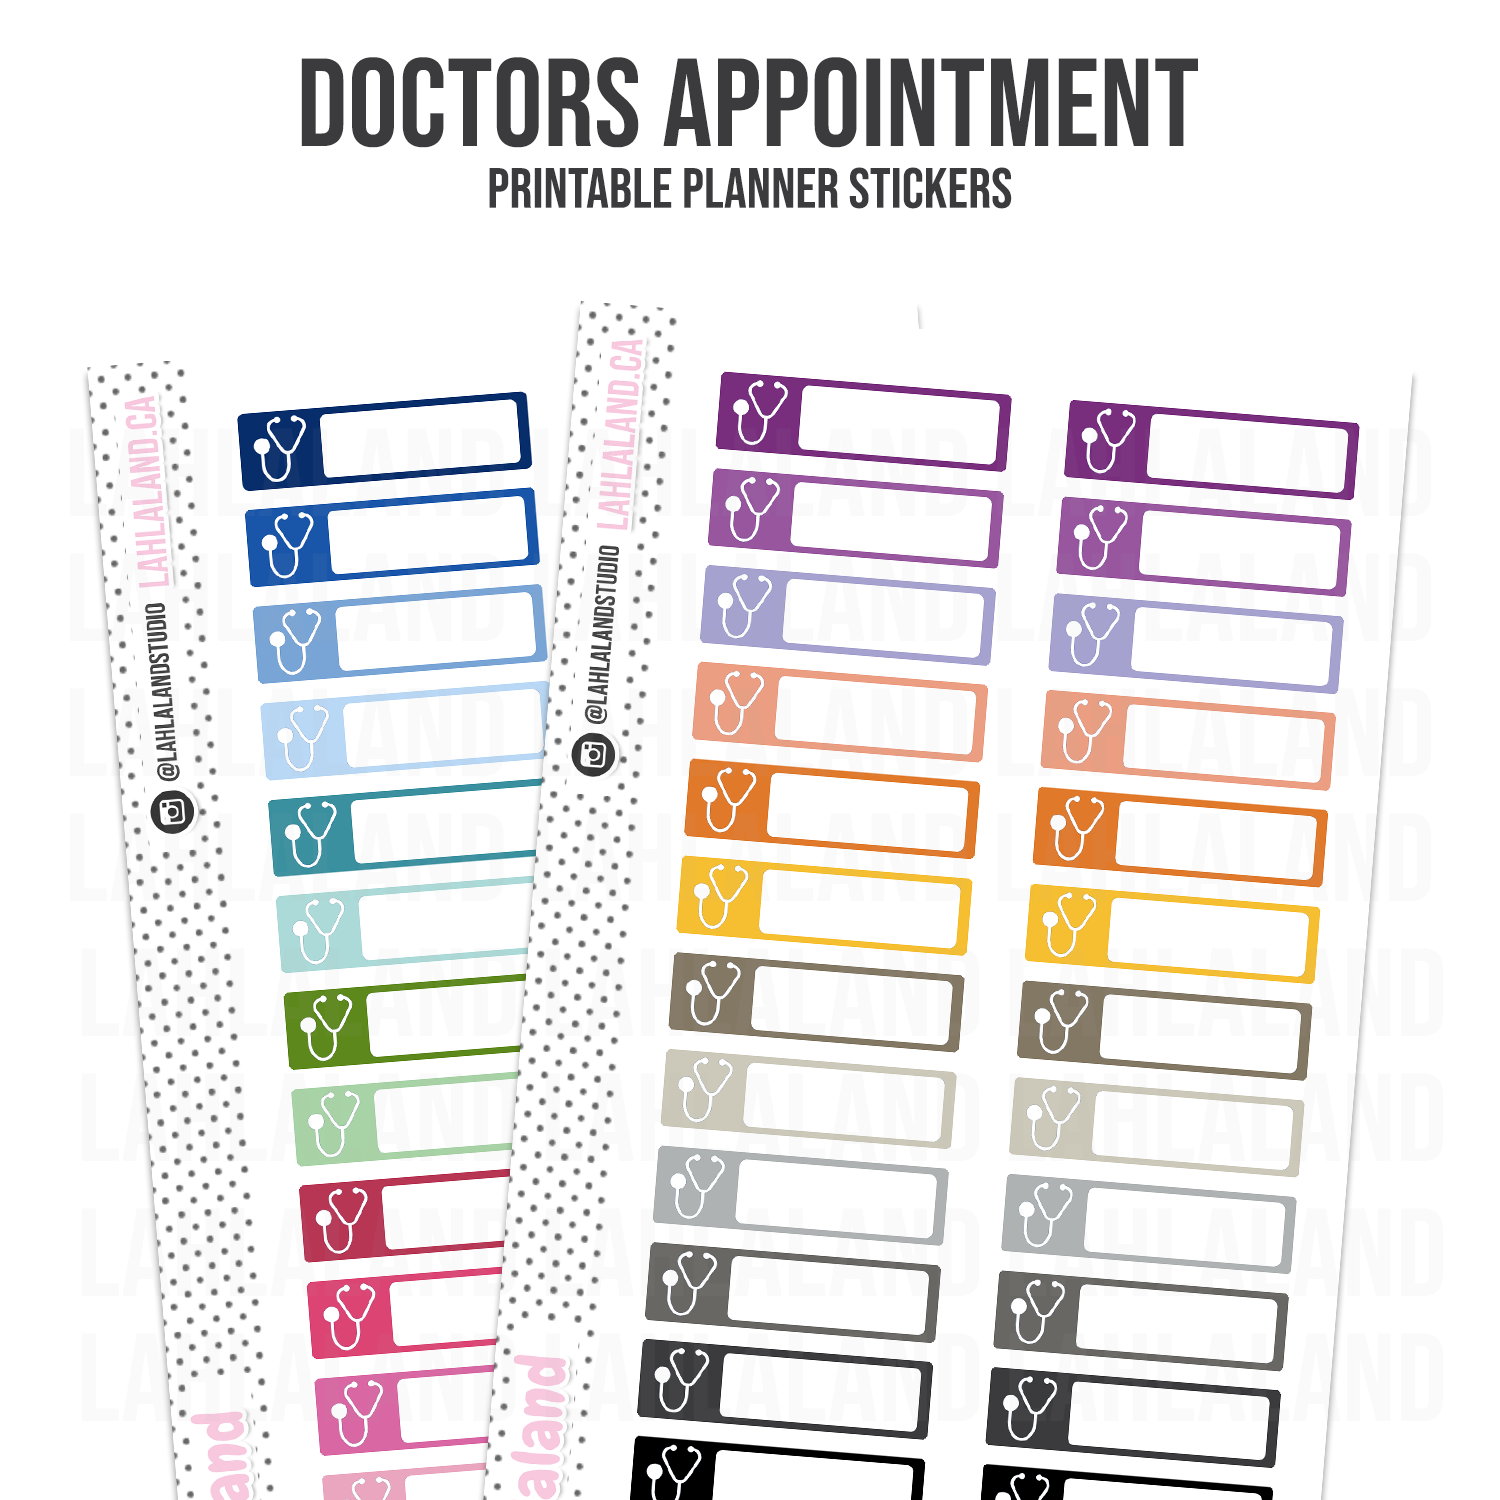 Doctors Appointment - Functional Stickers